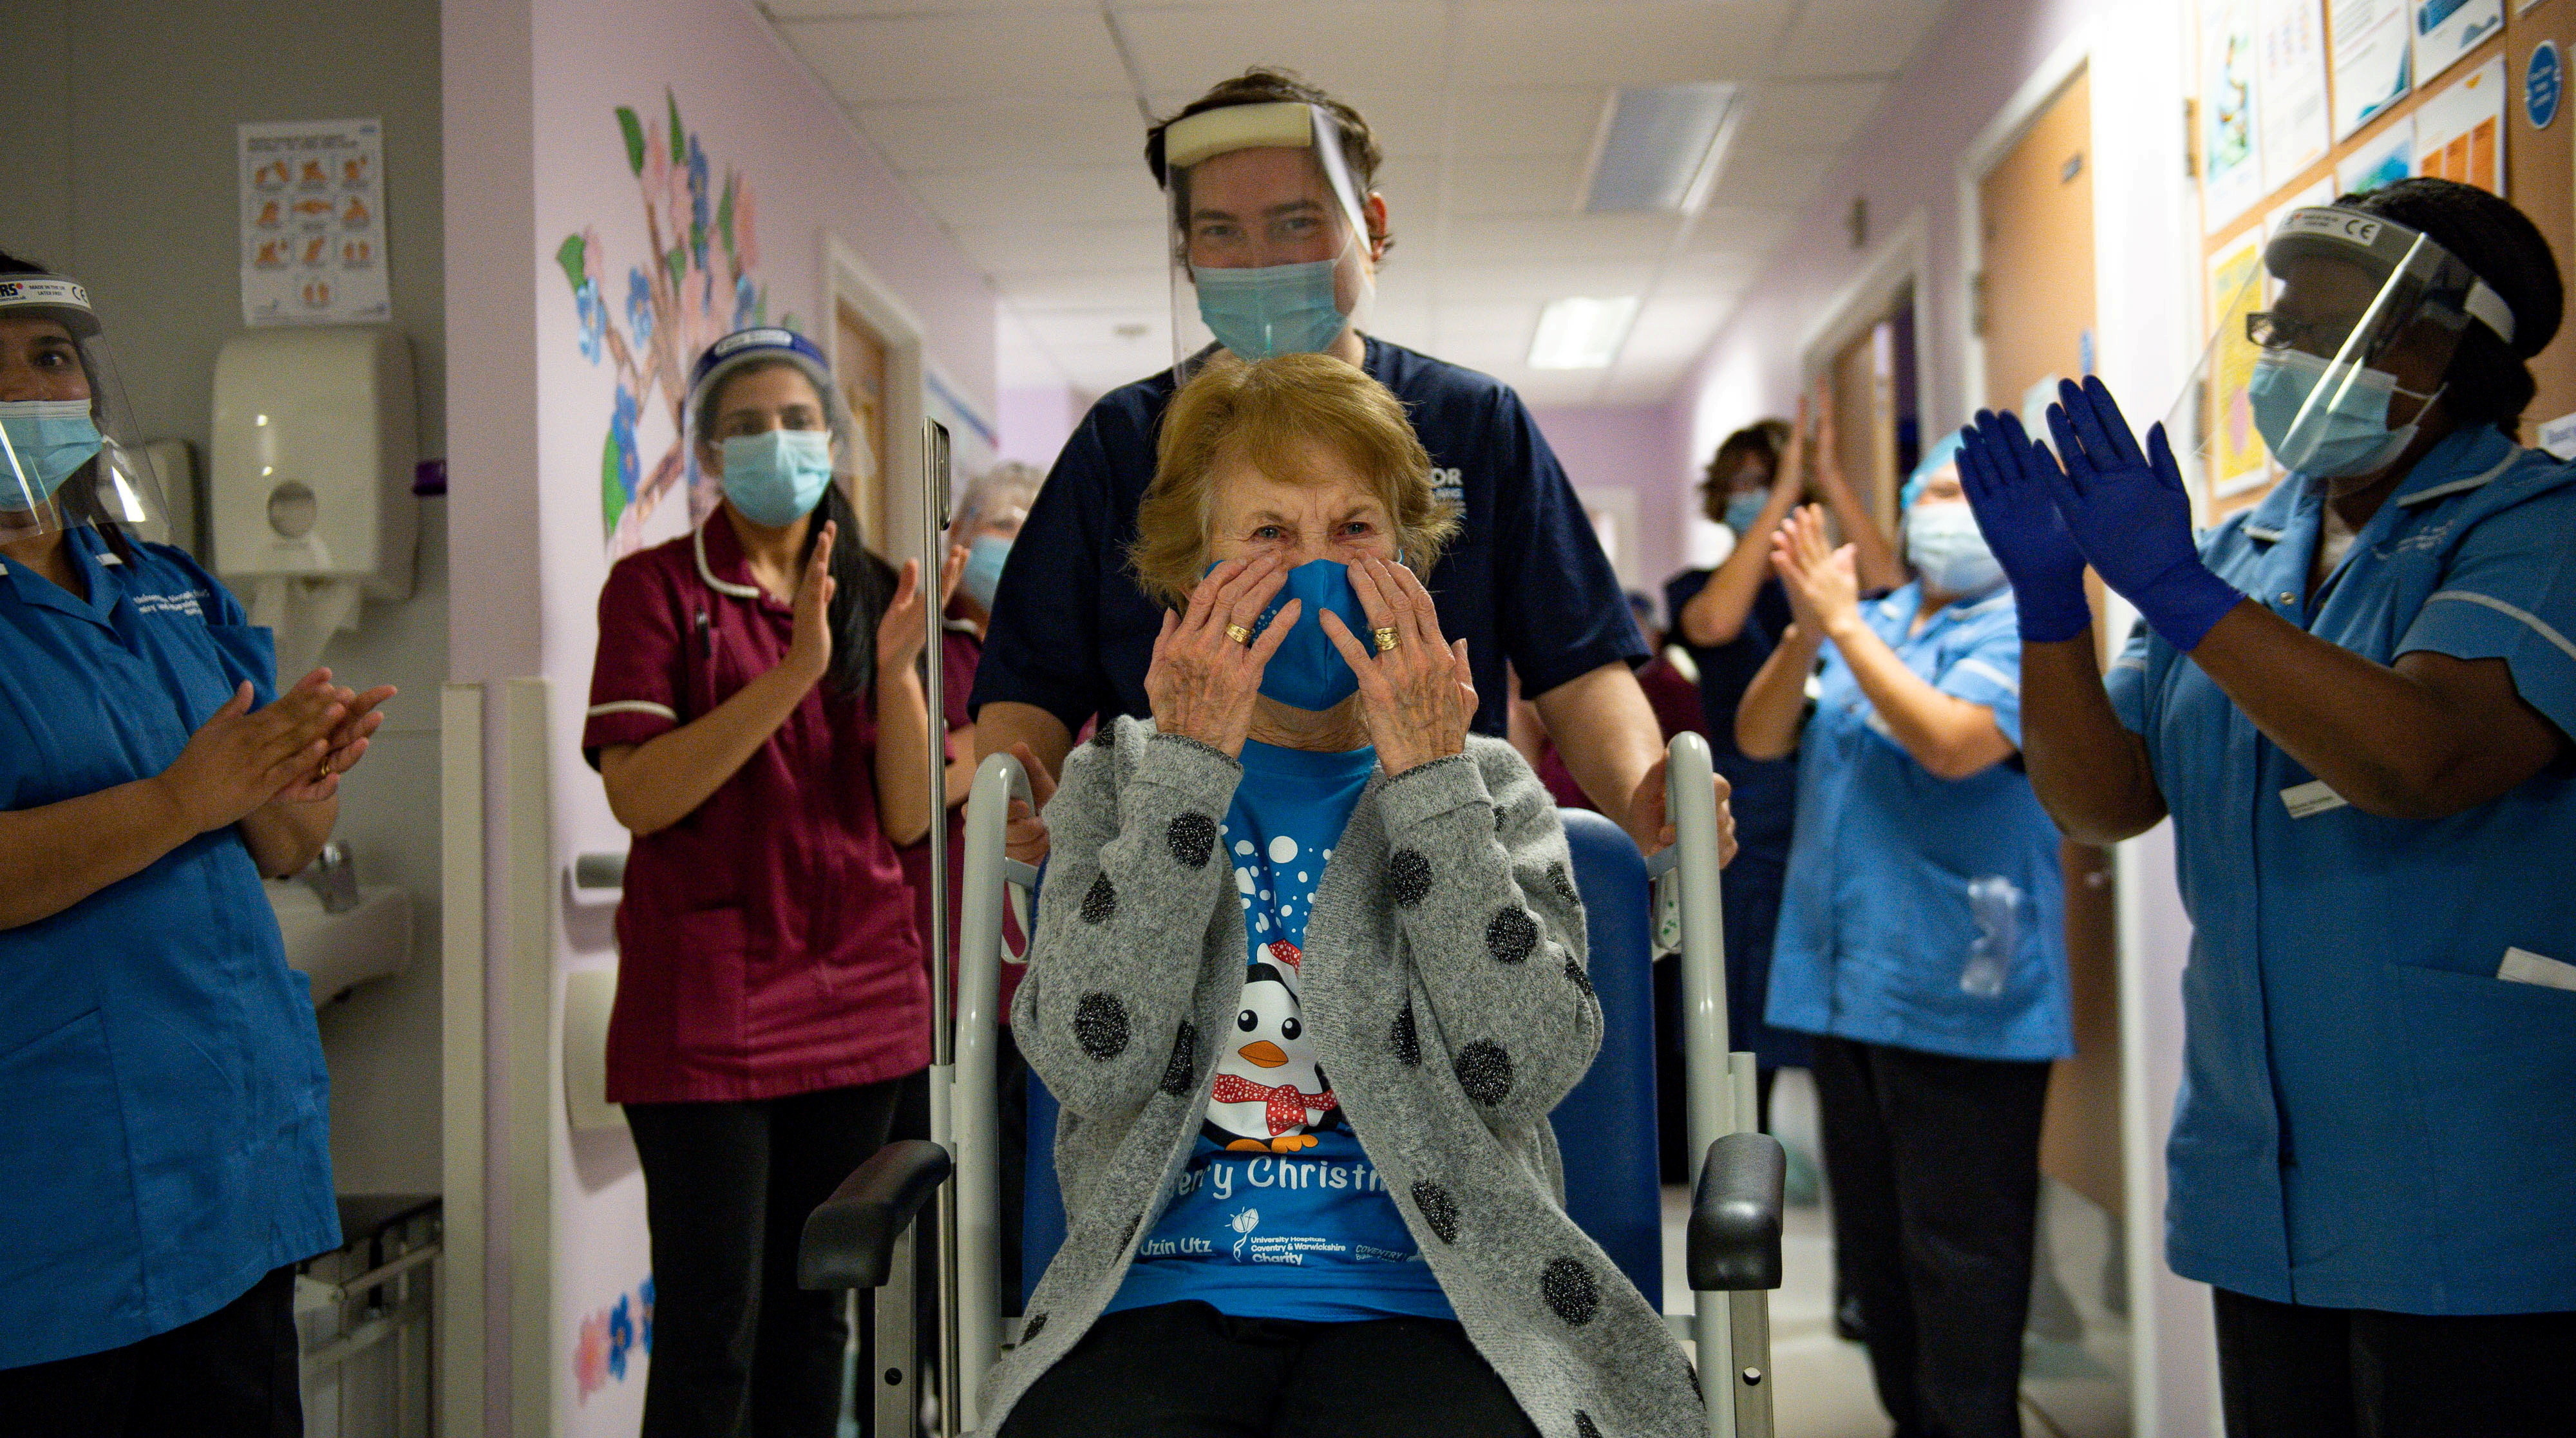 Margaret Keenan, 90, is applauded by staff as she returns to her ward after becoming the first person in Britain to receive the Pfizer/BioNTech  COVID-19 vaccine at University Hospital, at the start of the largest ever immunisation programme in the British history, in Coventry, Britain December 8, 2020. Britain is the first country in the world to start vaccinating people with the Pfizer/BioNTech jab. Jacob King/Pool via REUTERS     TPX IMAGES OF THE DAY - RC2XIK99JVEQ